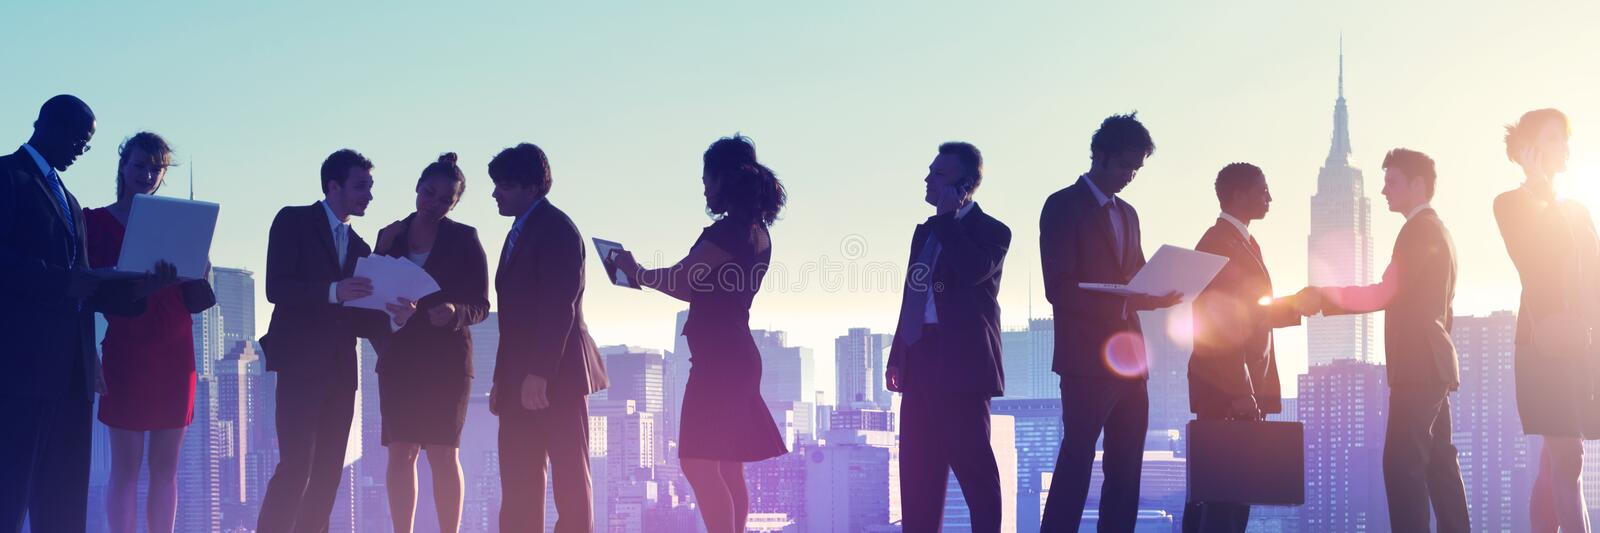 Business People New York Outdoor Meeting Silhouette Concept royalty free stock photos